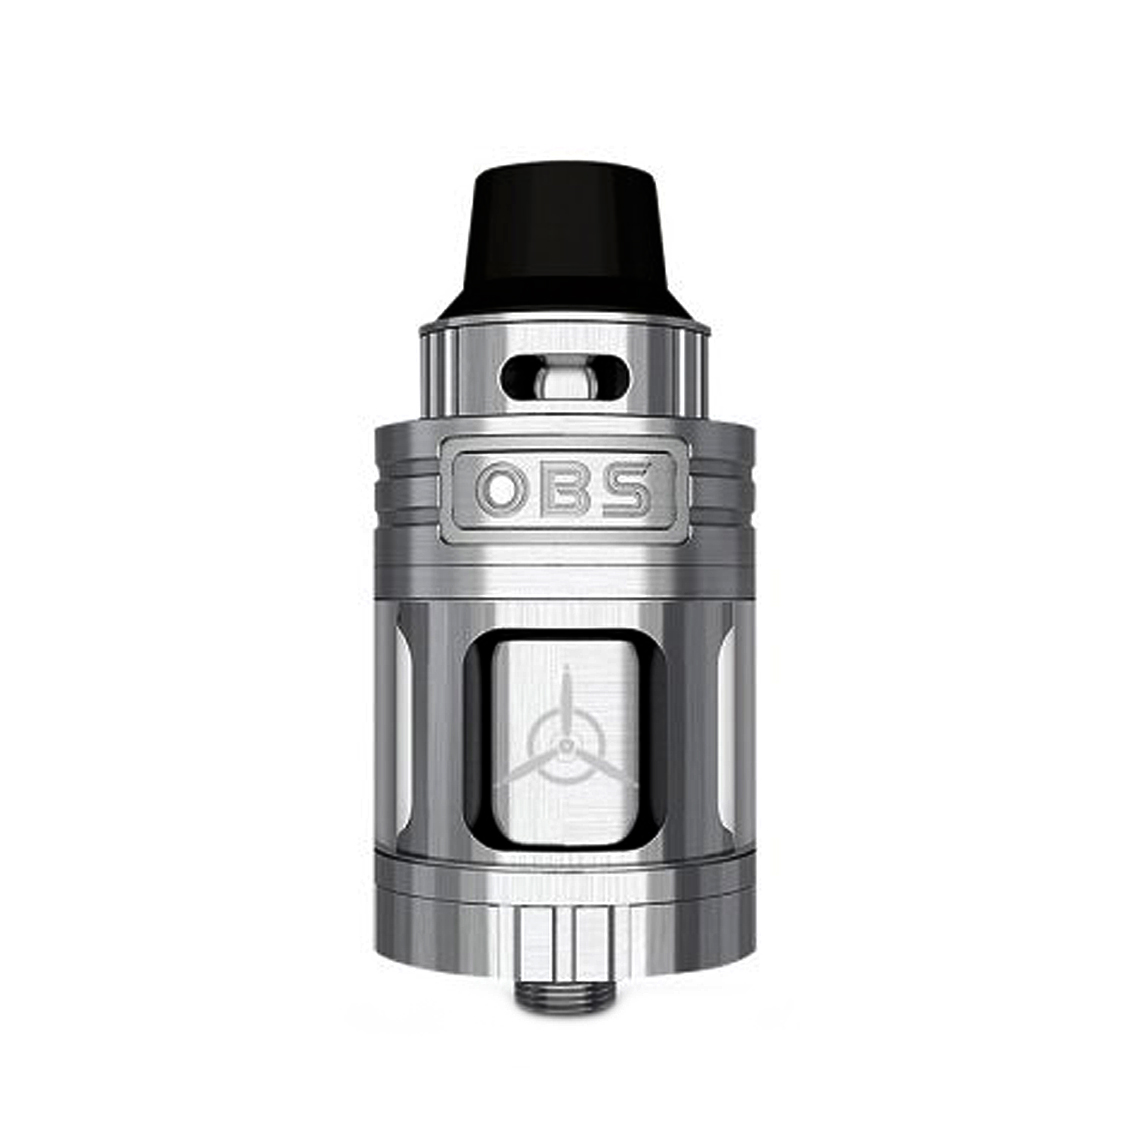 OBS Engine Mini RTA in Steel